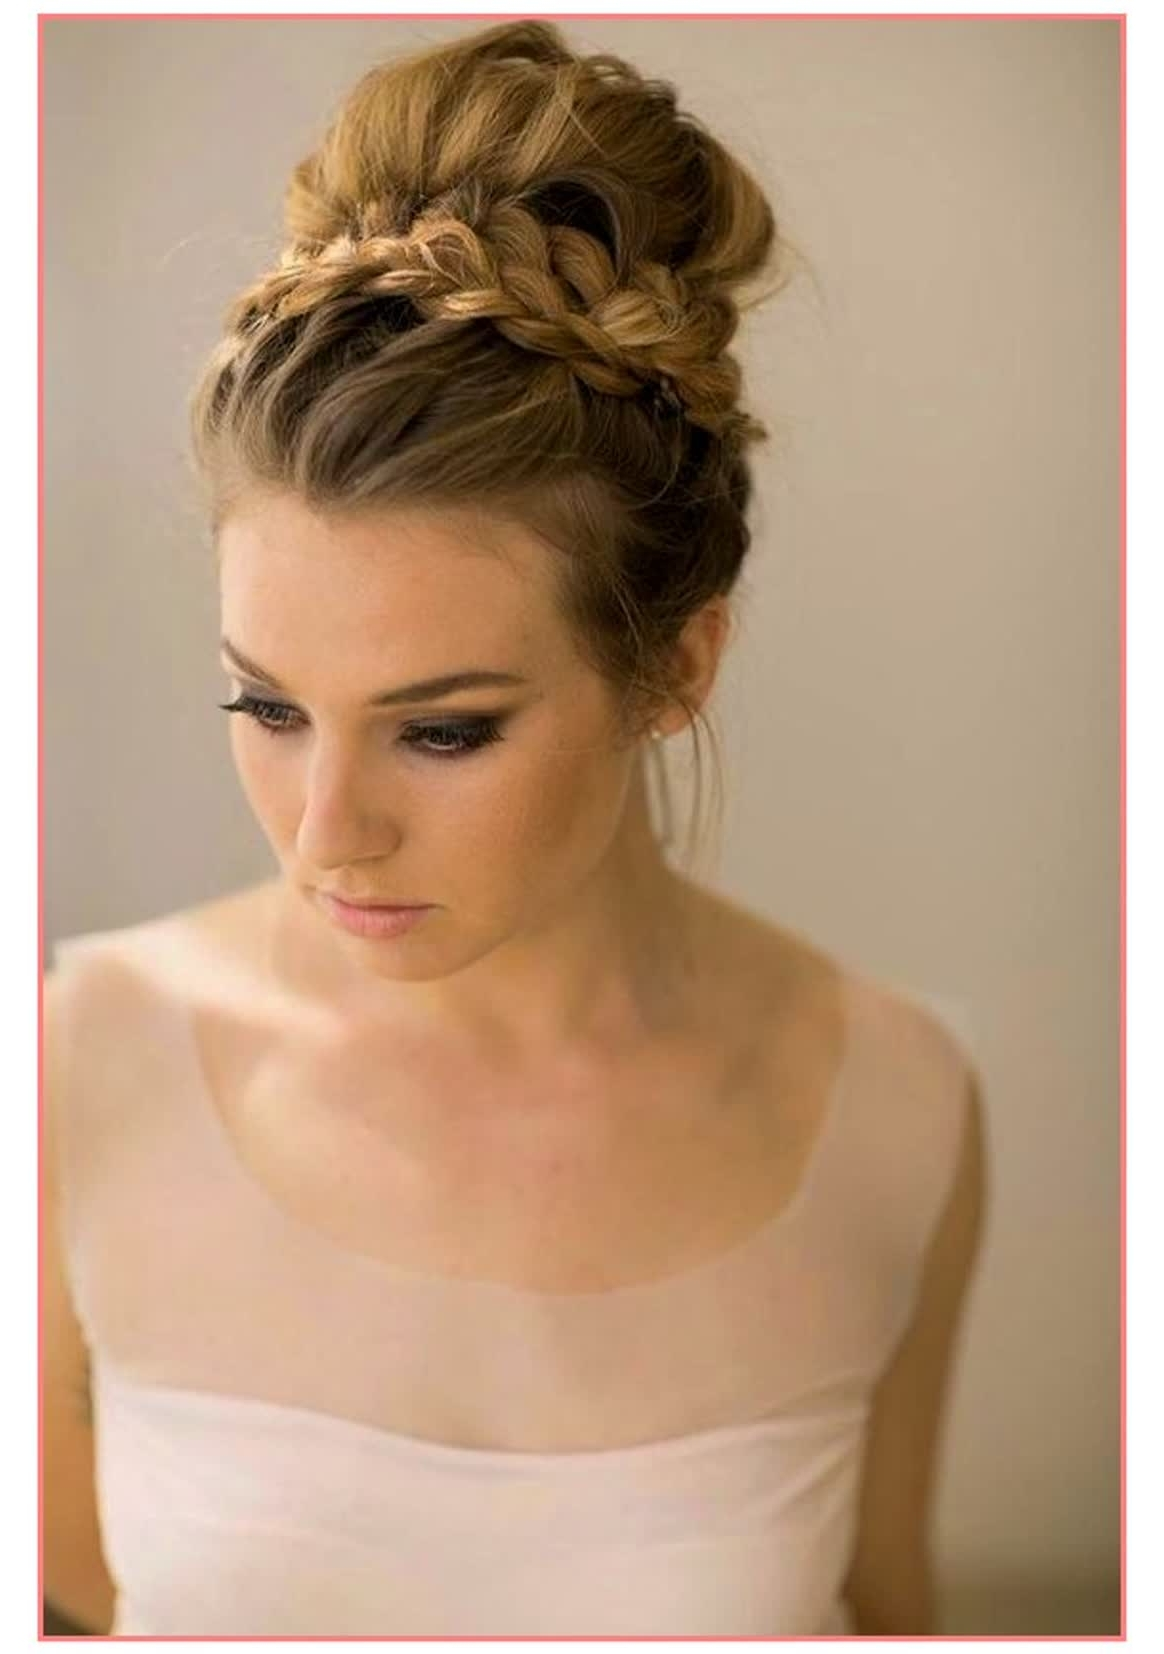 Newest Easy Wedding Guest Hairstyles For Short Hair Intended For Marvelous Wedding Guest Hair Styles Ideas Hairstyles For Medium (View 11 of 15)